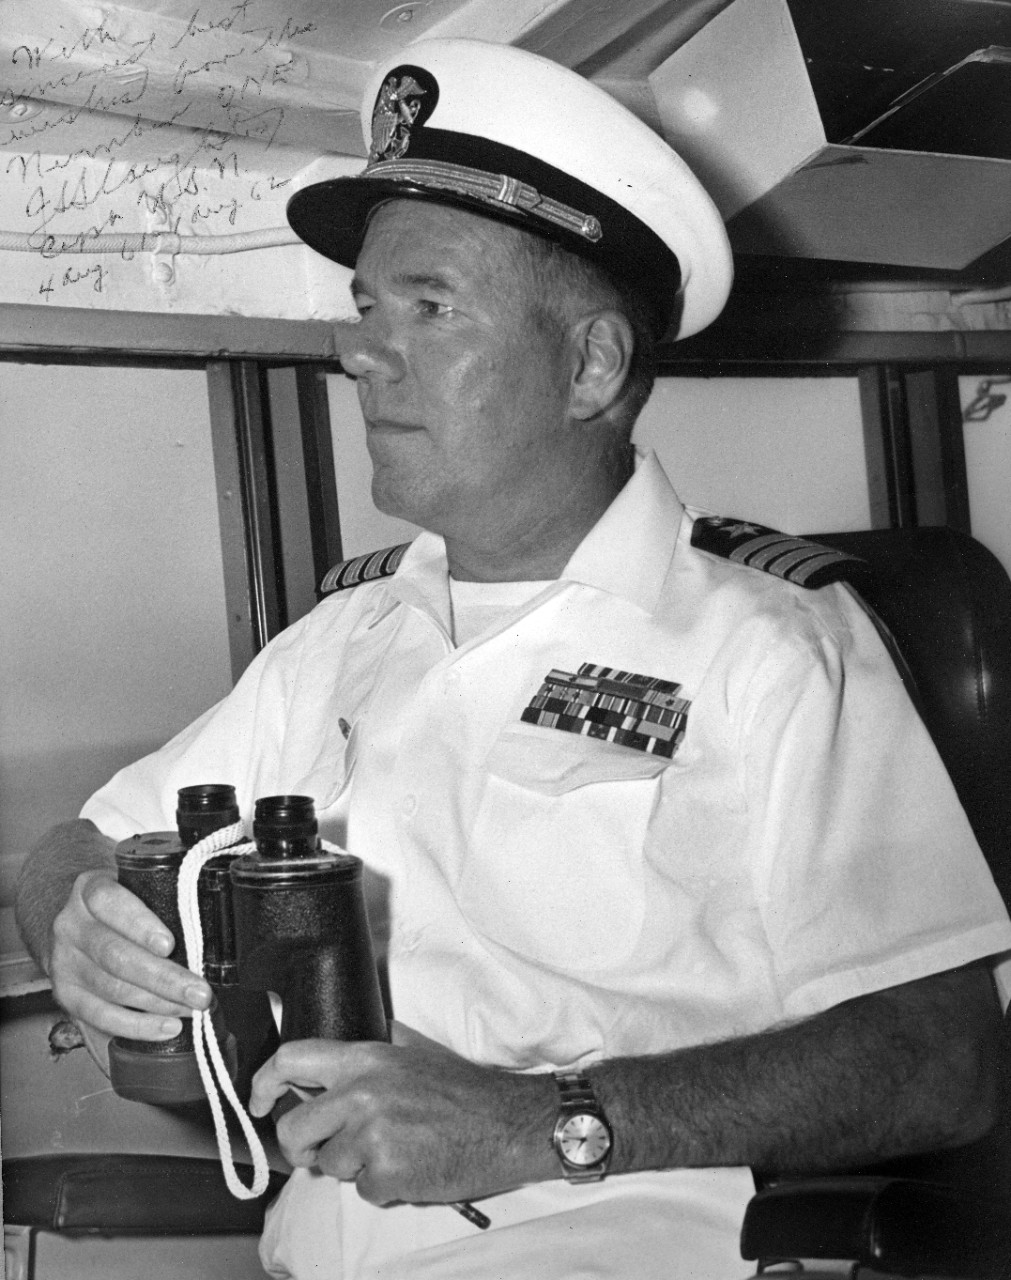 "Collection of 15 autographed portraits of commanding officers of USS Northampton (CLC-1), 1950s-1960s. Individuals include: Slade Cutter, Harold G. Bowen, Jr.,  Eugene Hemley, John S. ""Jack"" Slaughter, W.D. Irvin, W.E. Kuntz, E.H. Farrell, Donald T. Poe, J.W. Short, E.P. Homes, J.M. Lee, C.E. Weakley, Harry B. Hahn, and Edward E. Conrad."